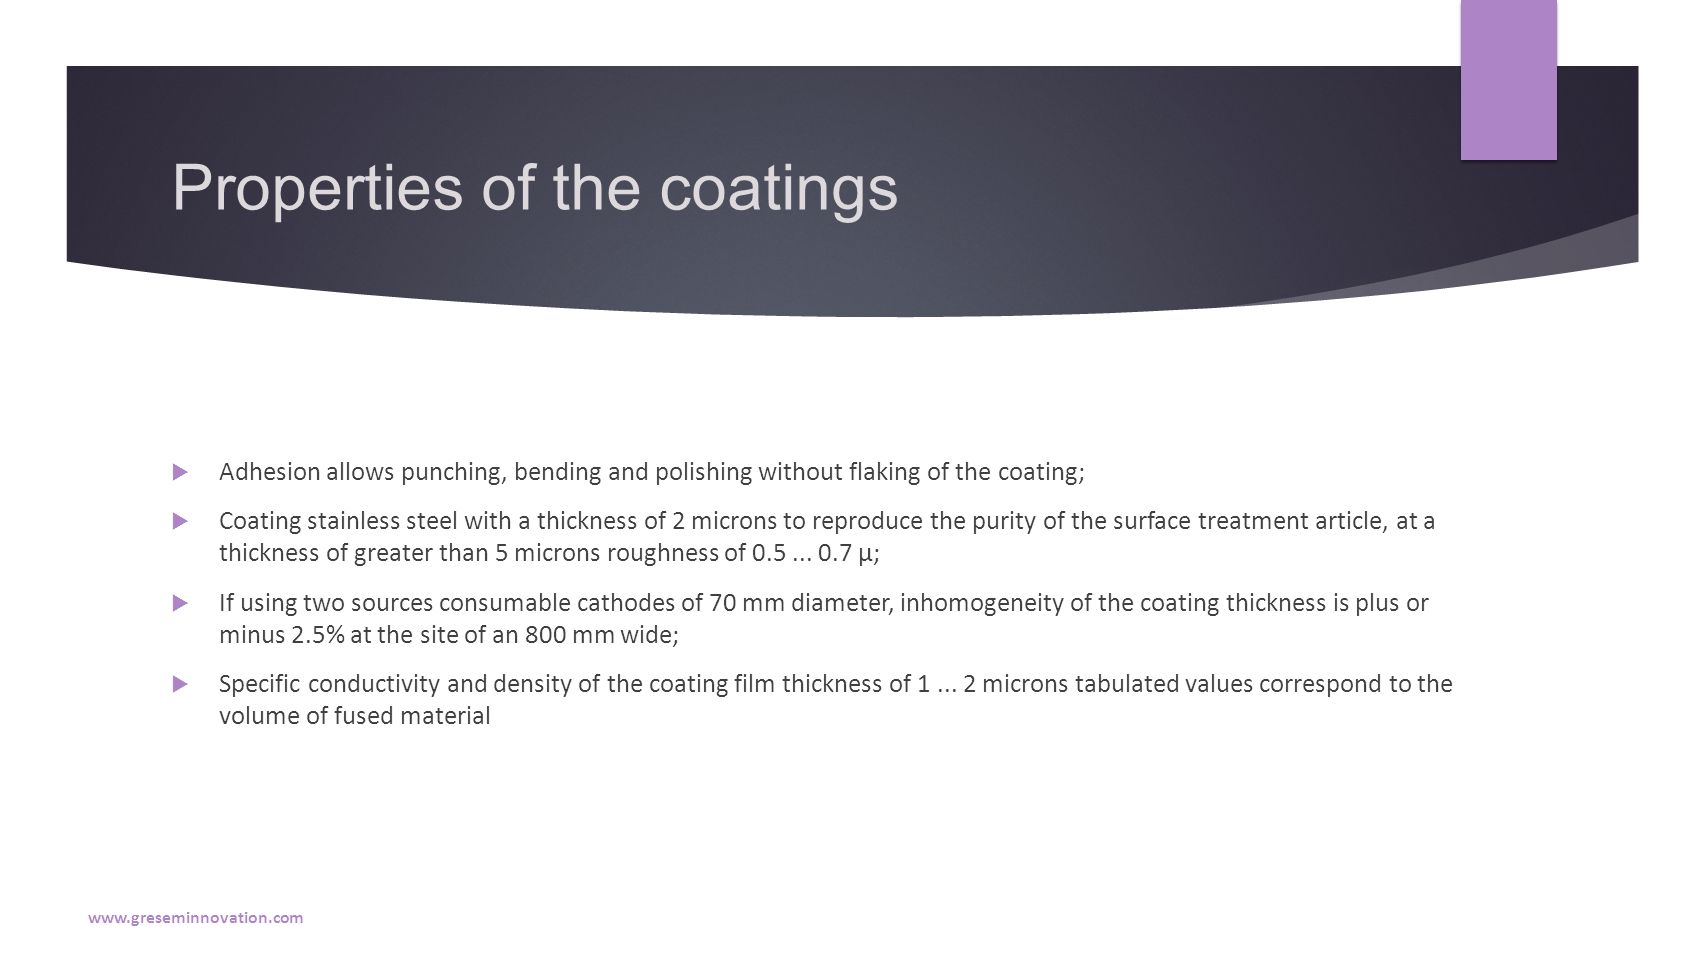 Properties of the coatings  Adhesion allows punching, bending and polishing without flaking of the coating;  Coating stainless steel with a thickness of 2 microns to reproduce the purity of the surface treatment article, at a thickness of greater than 5 microns roughness of 0.5...